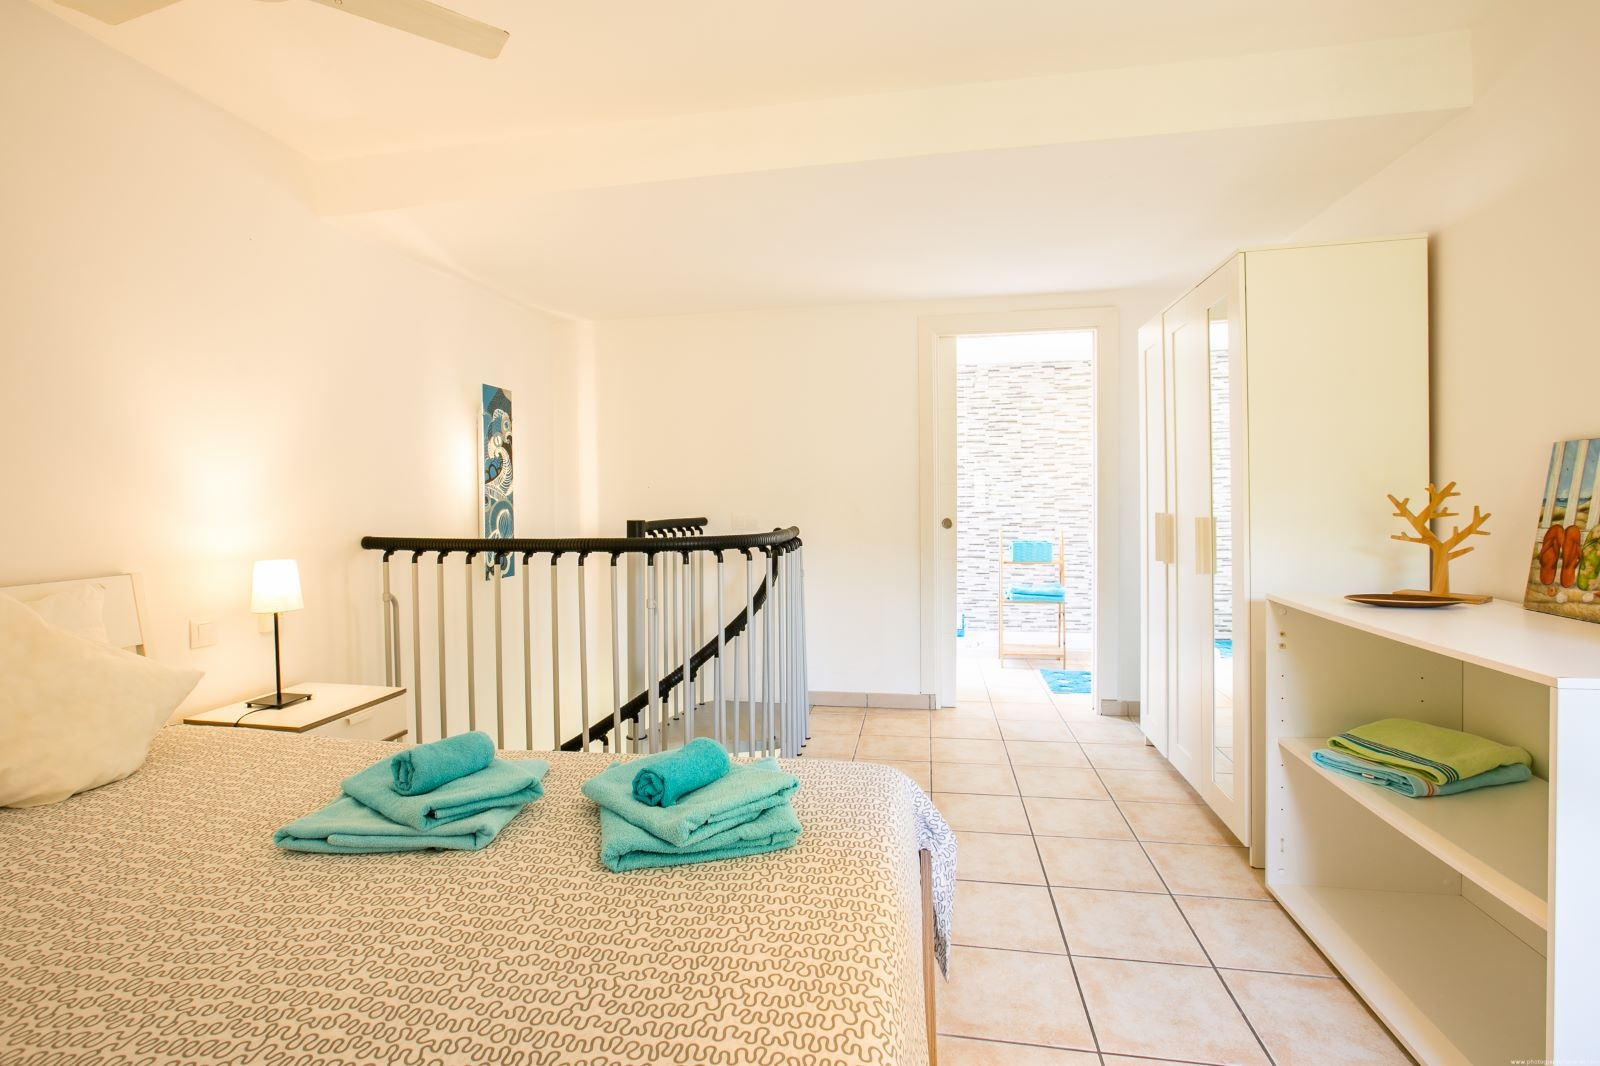 Properties for Sale in Tenerife, Canary Islands, Spain | SylkWayStar Real Estate. 1 bedroom apartment El Cortijo, Las Americas. Image-22503